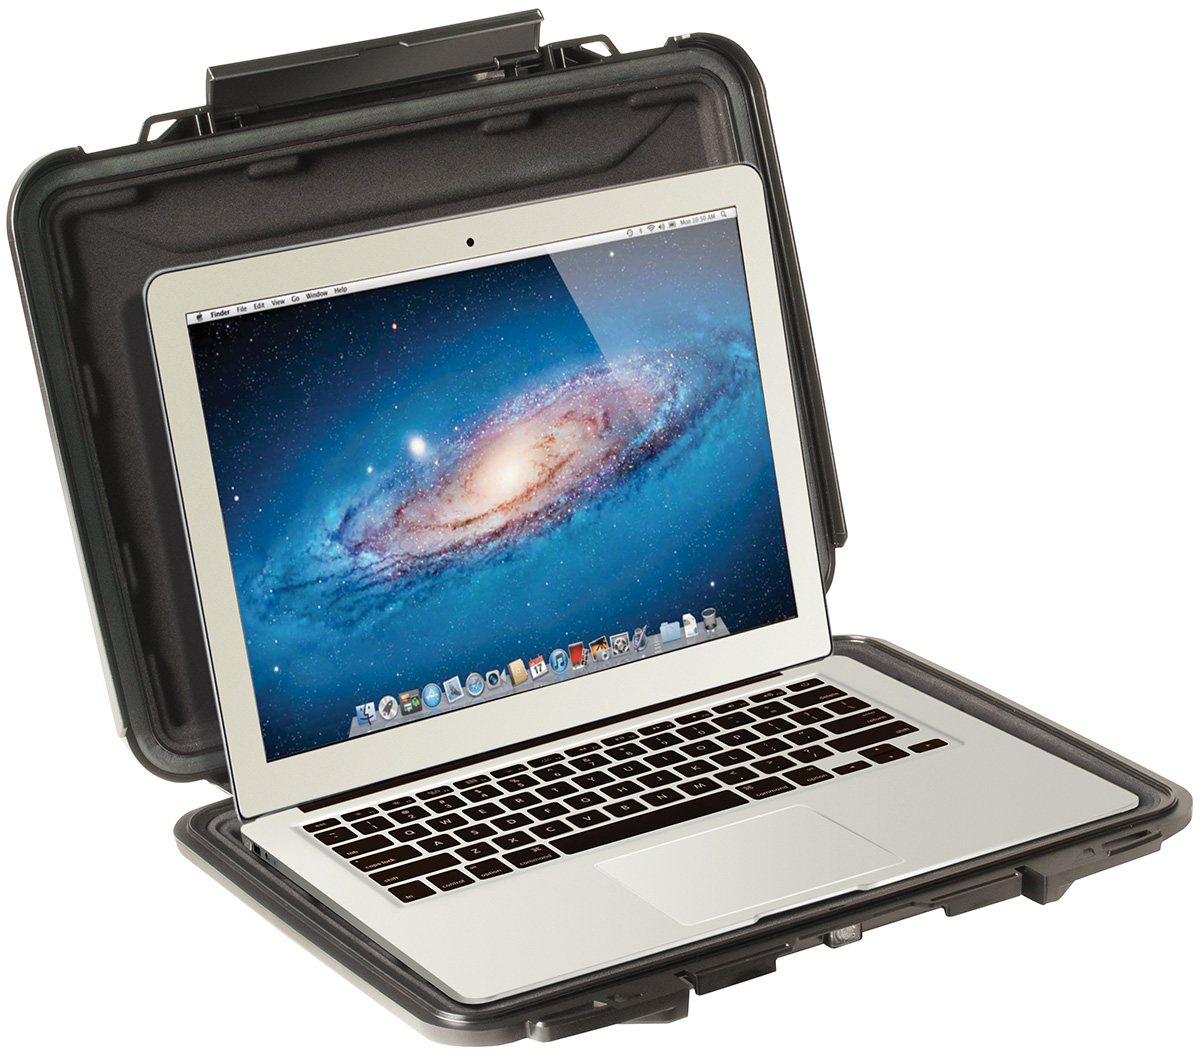 pelican 1070cc hard macbook air laptop protective case